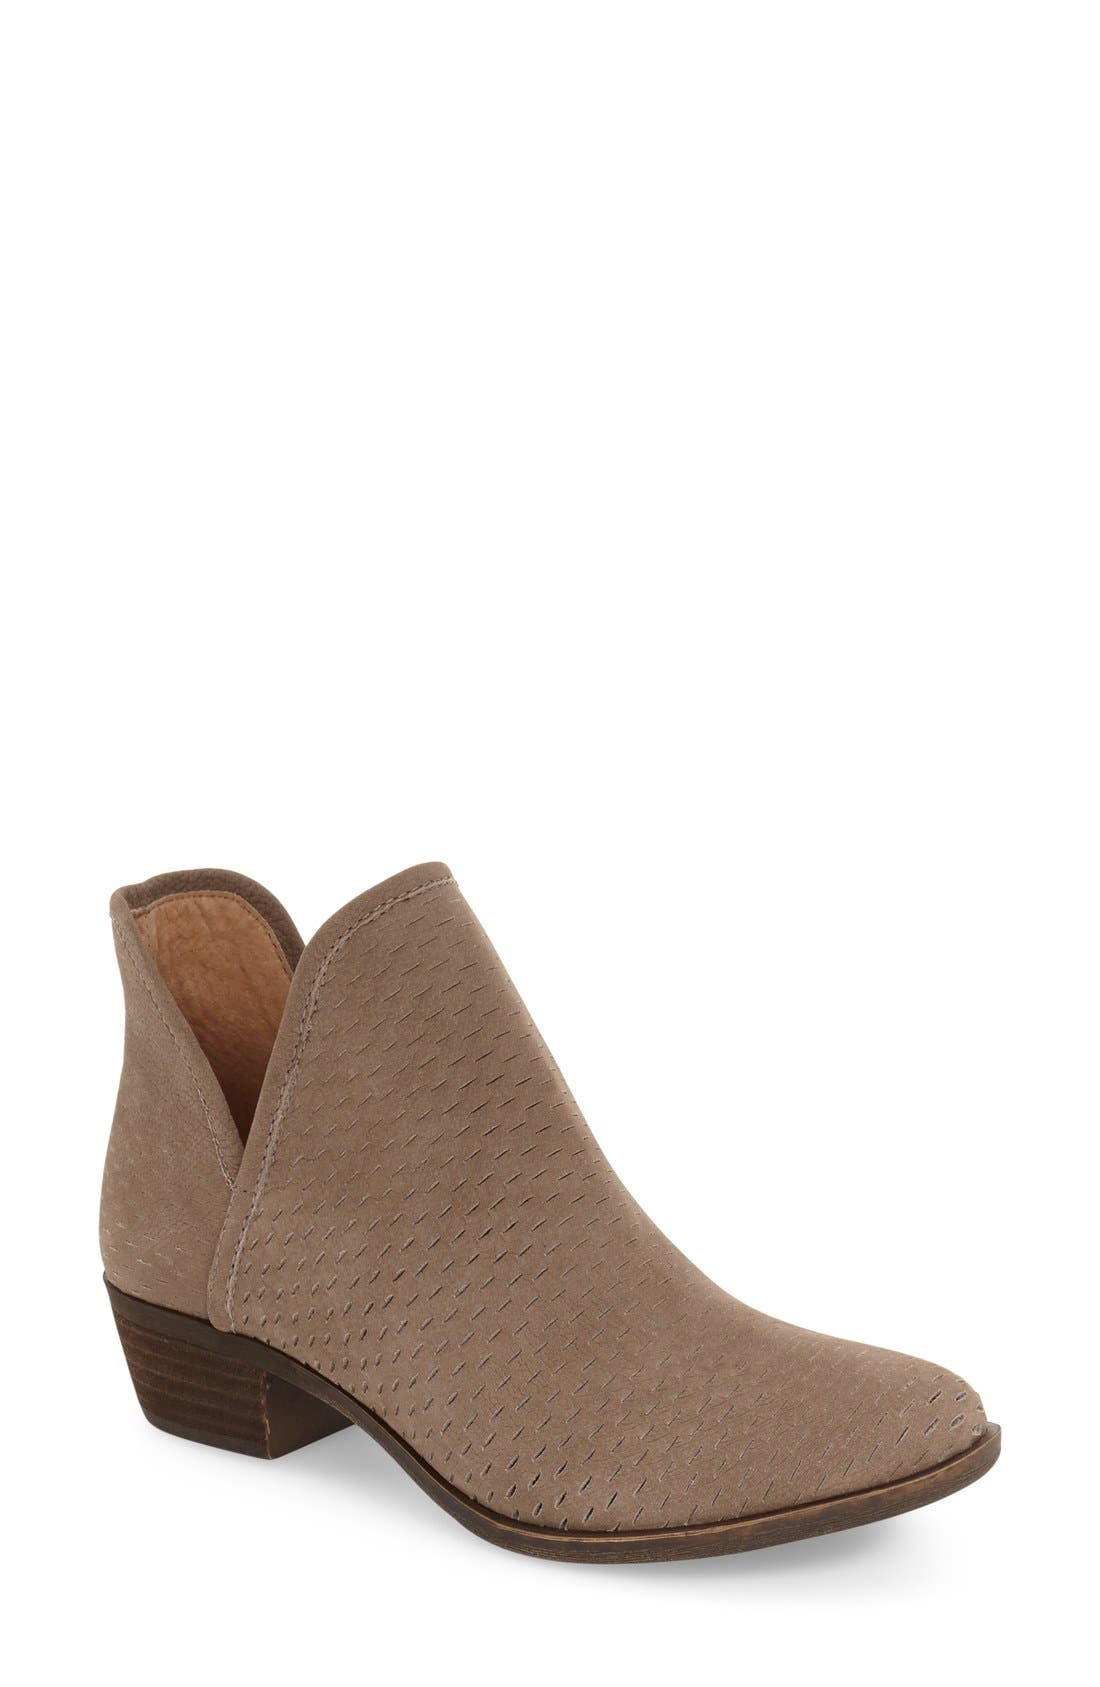 Alternate Image 1 Selected - Lucky Brand 'Bashina' Perforated Bootie (Women)